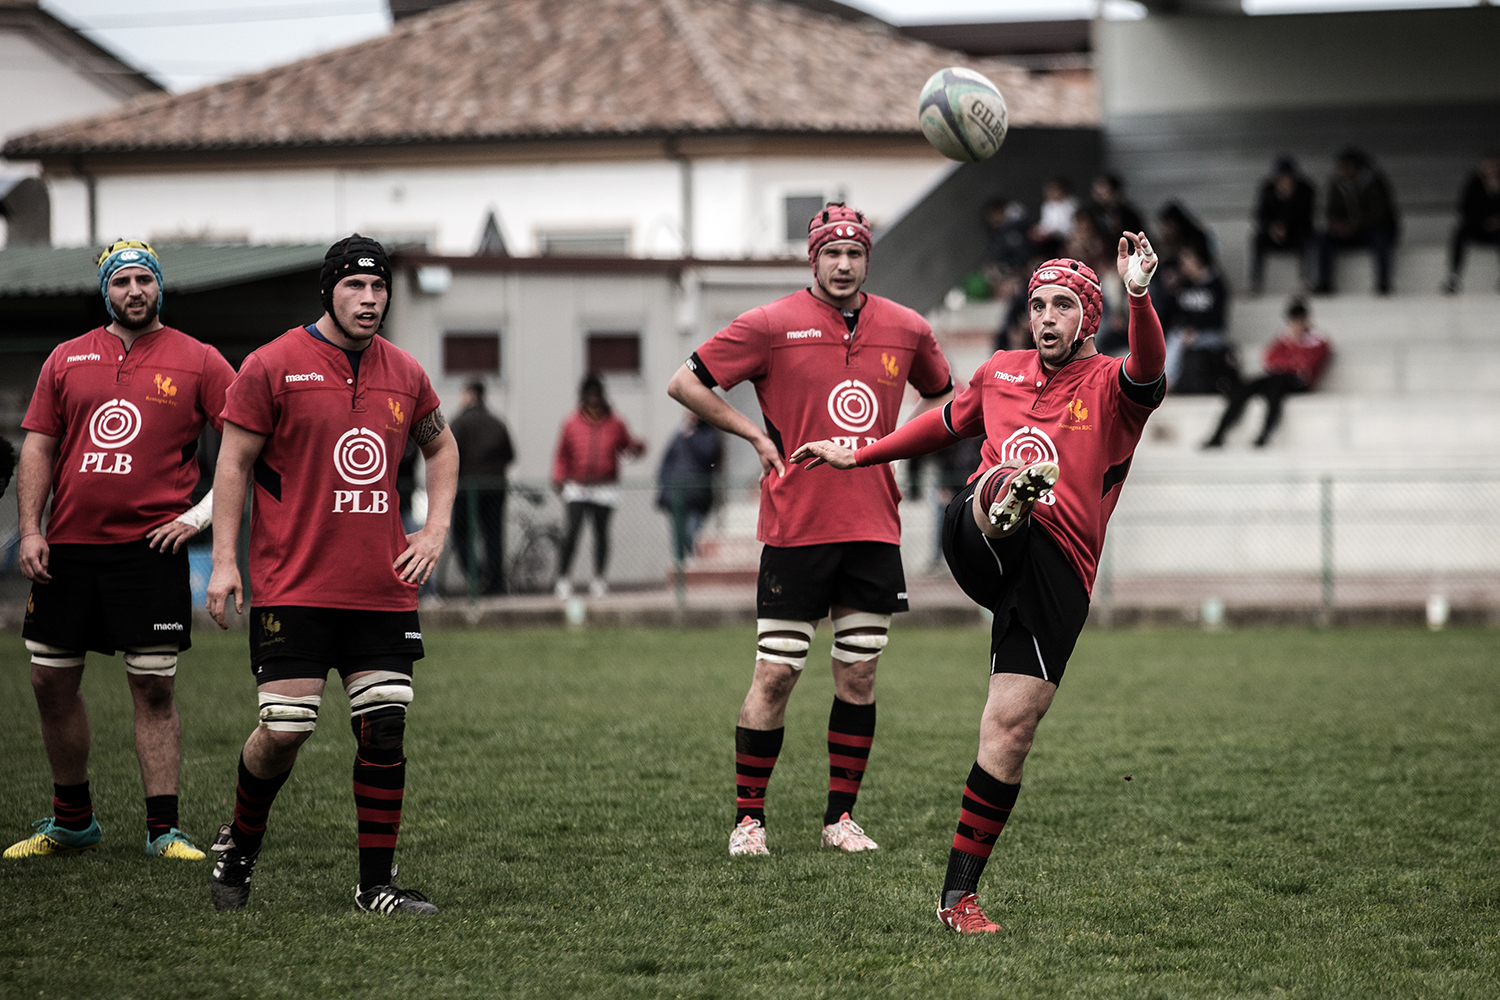 rugby_photograph_07.jpg